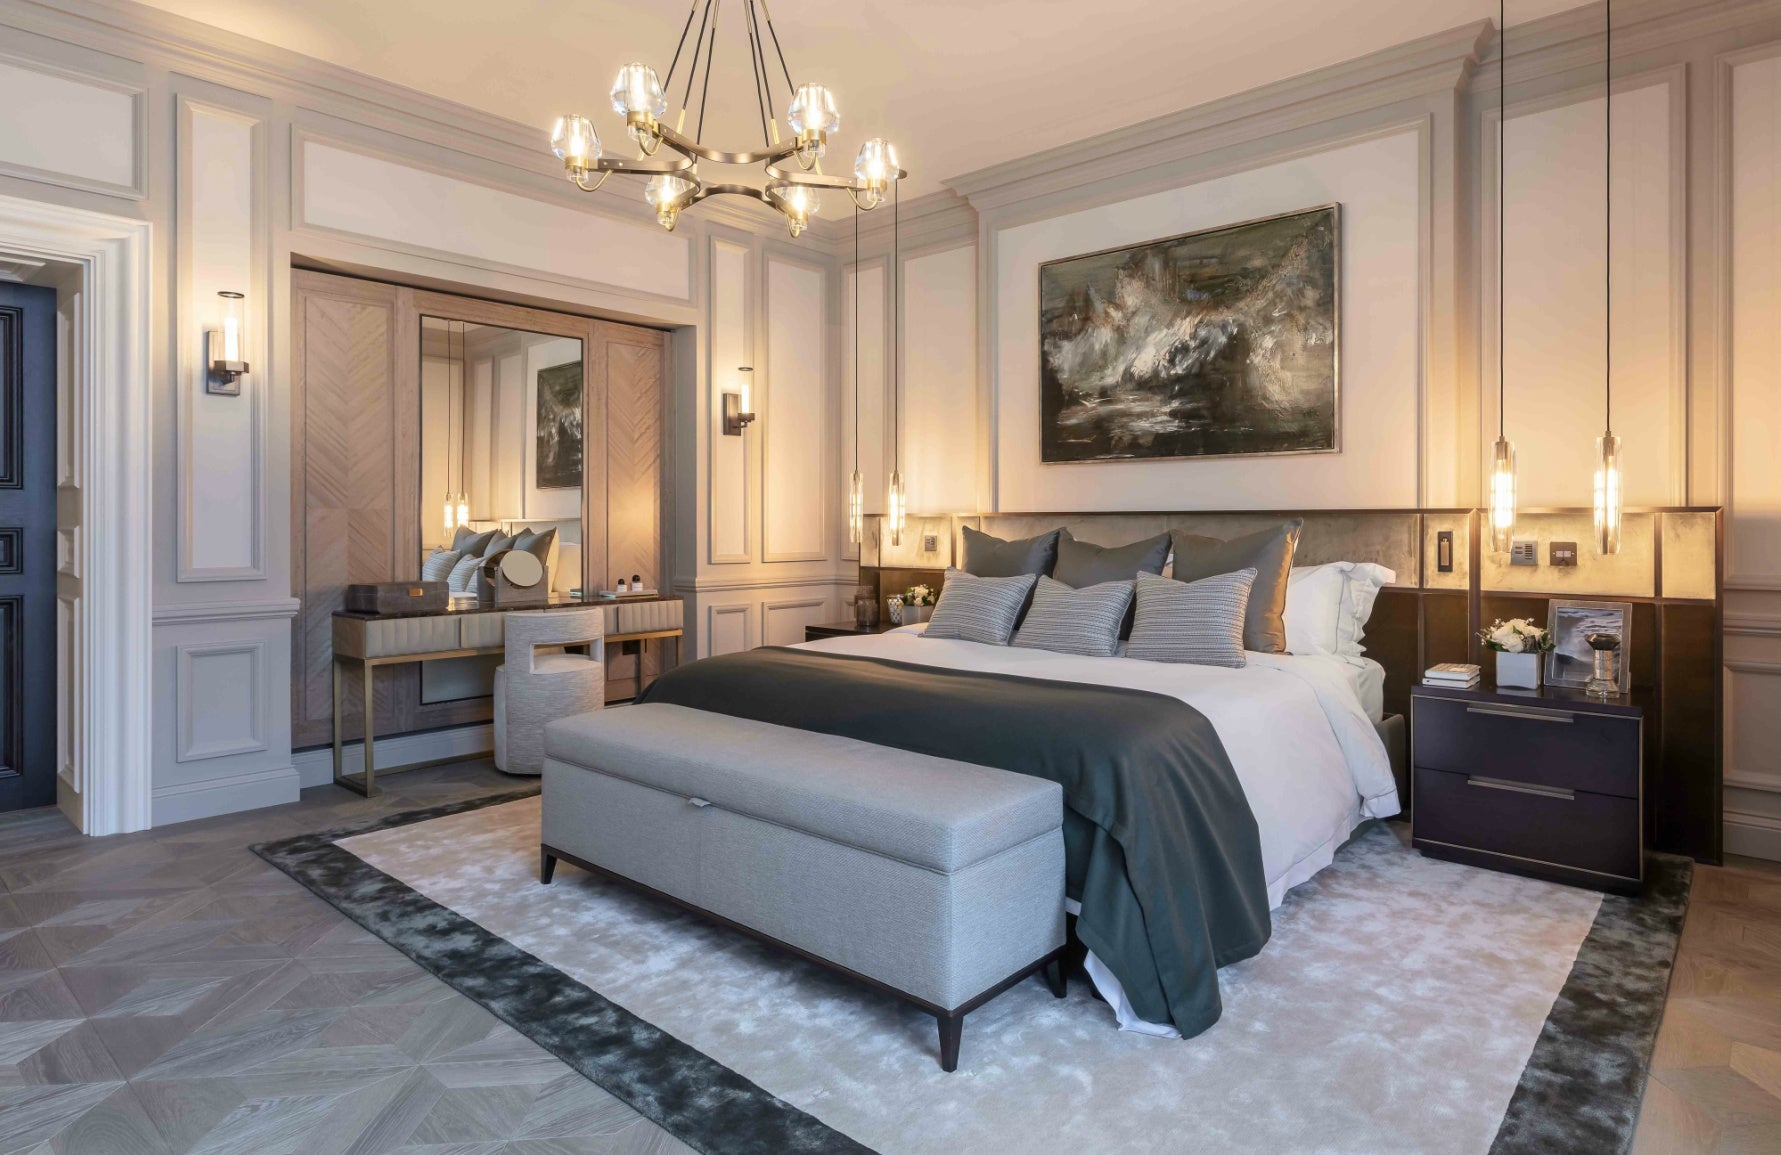 How To Light Your Home For Winter | Luxury Bedroom Interiors | Interior design by 1508 London | Read more in LuxDeco.com